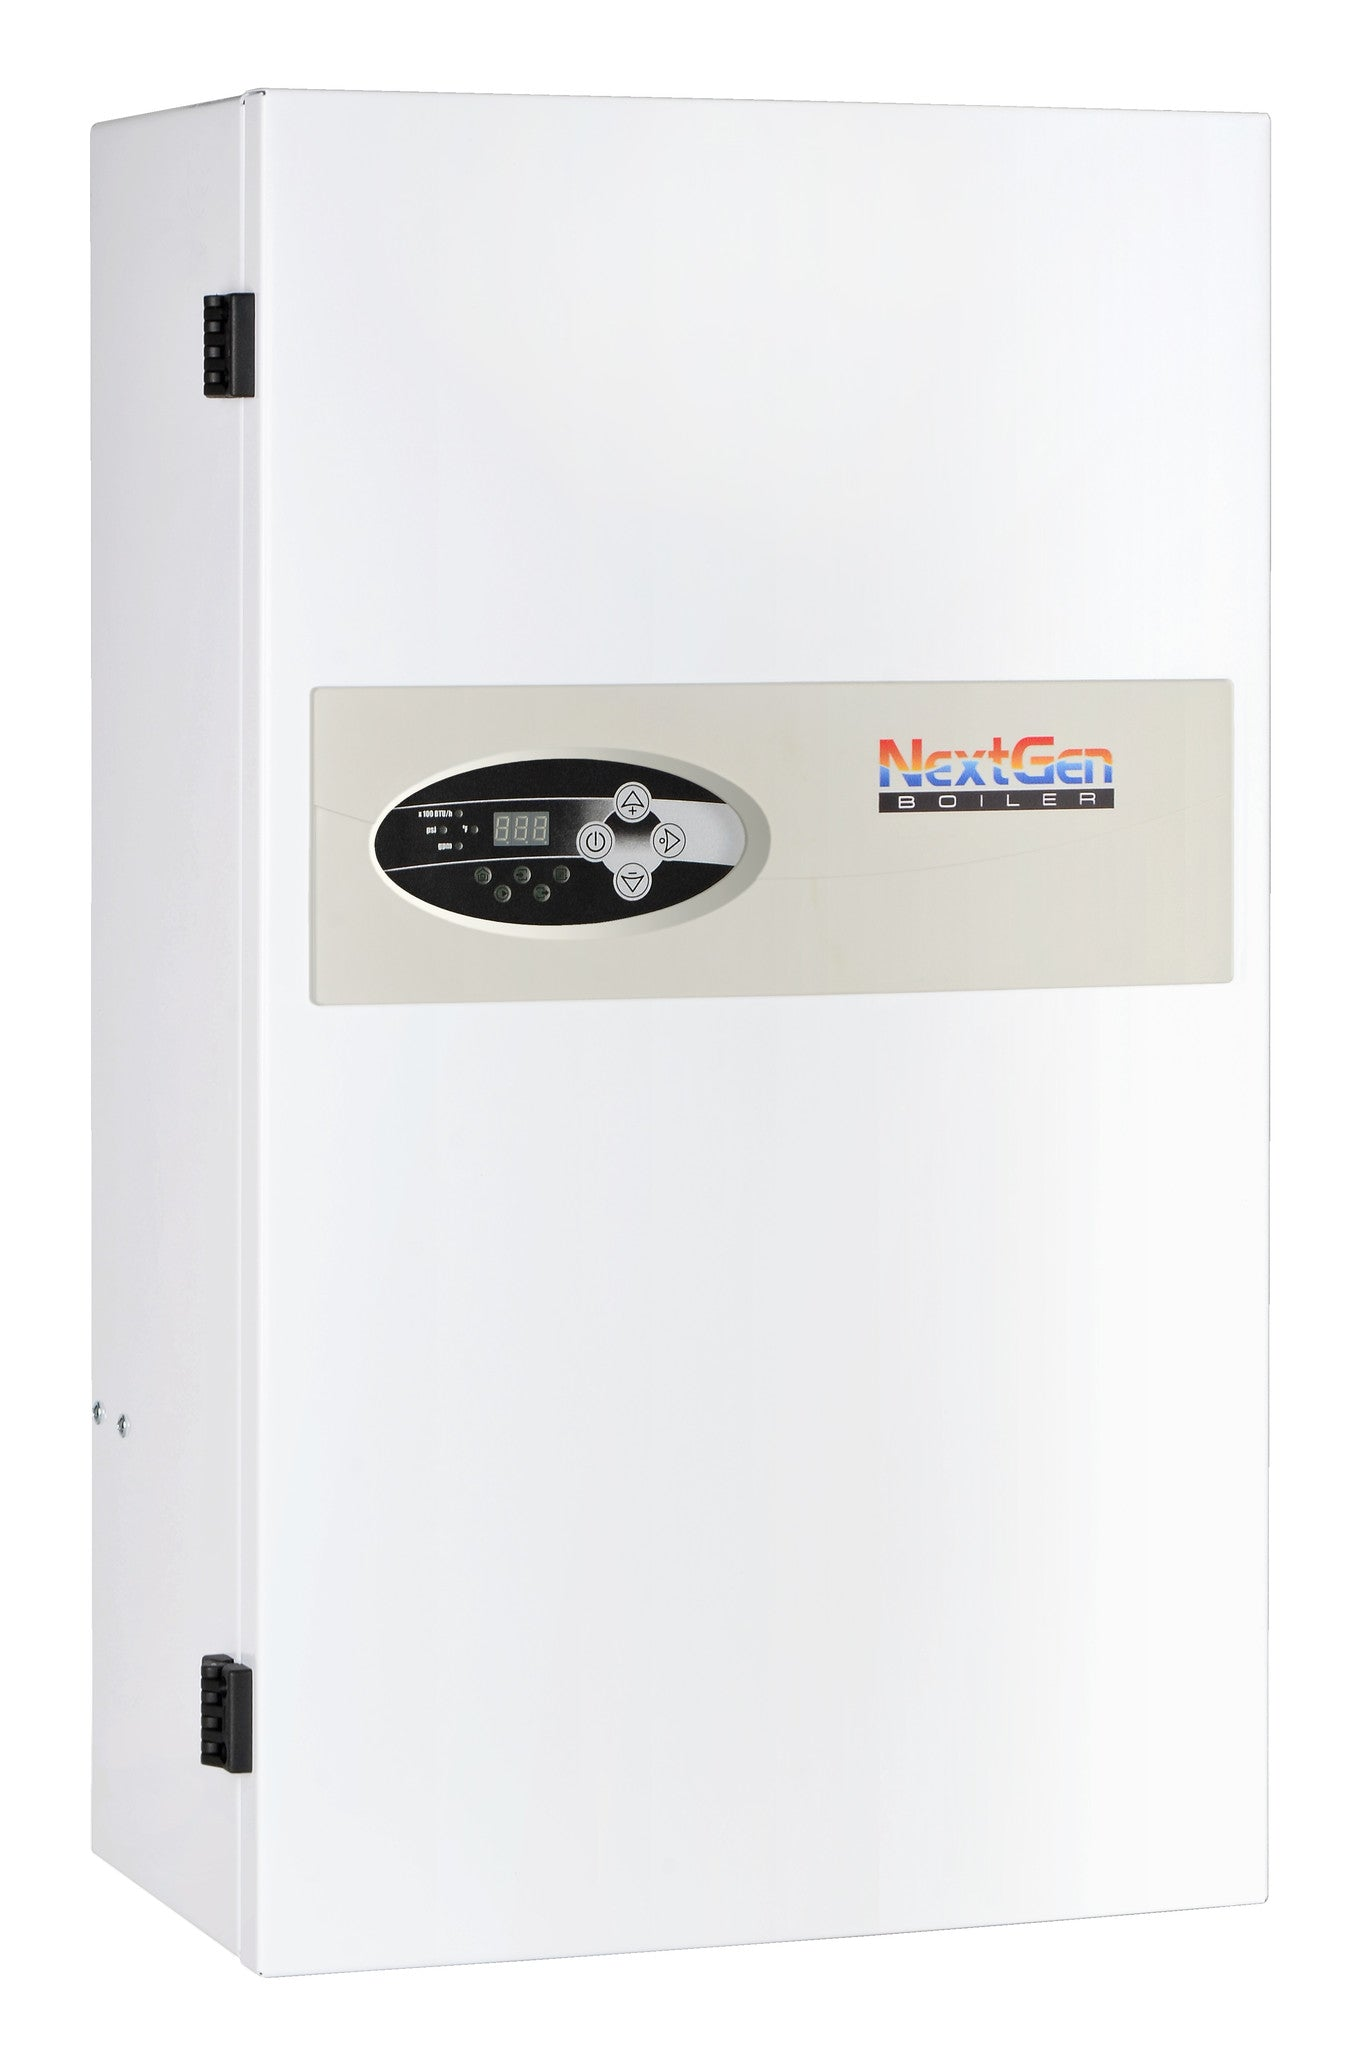 NEXTGEN-6 PRE-ASSEMBLED 6 kW ELECTRIC, RESIDENTIAL OR COMMERCIAL, MODULATING BOILER